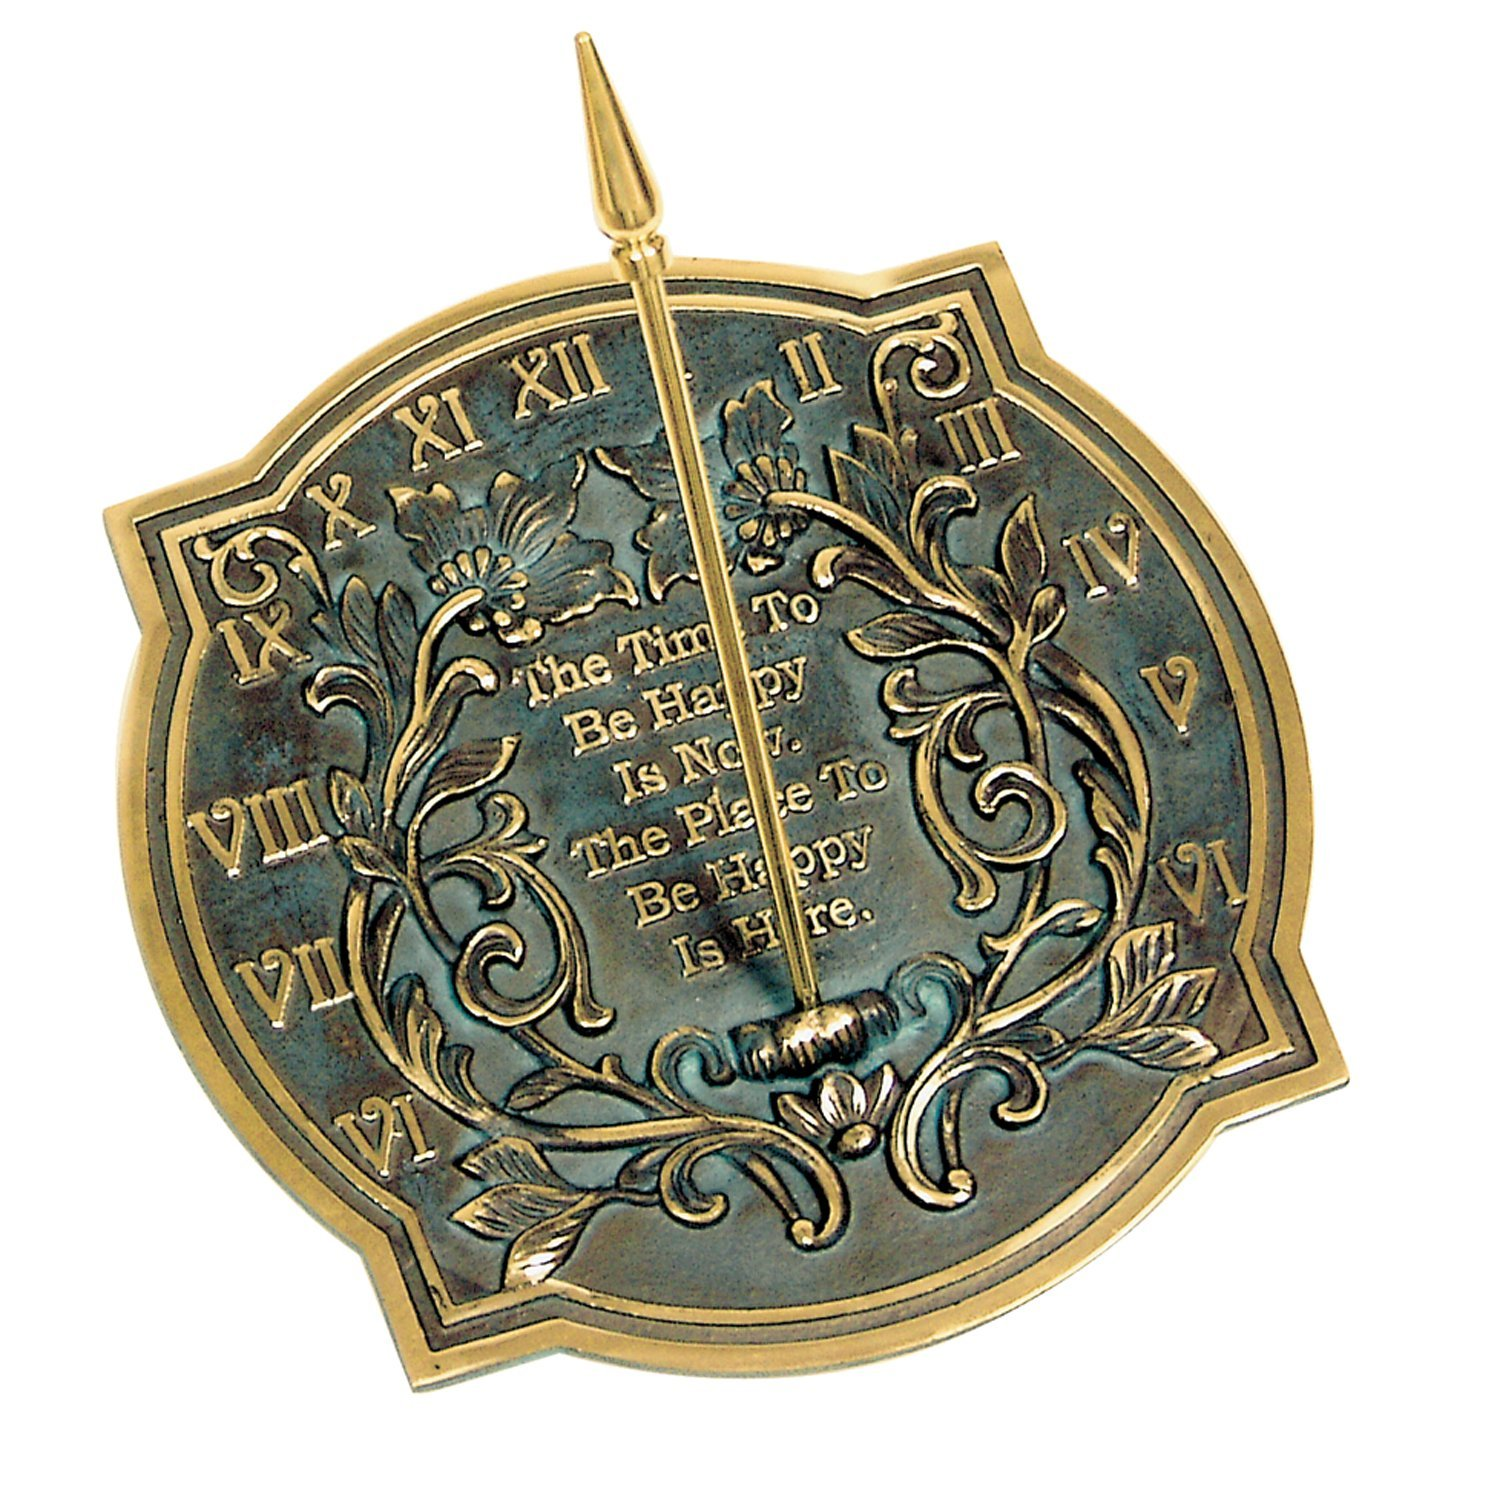 Rome 2303 Happiness Sundial, Solid Brass with Verdigris Highlights, 10-Inch Diameter